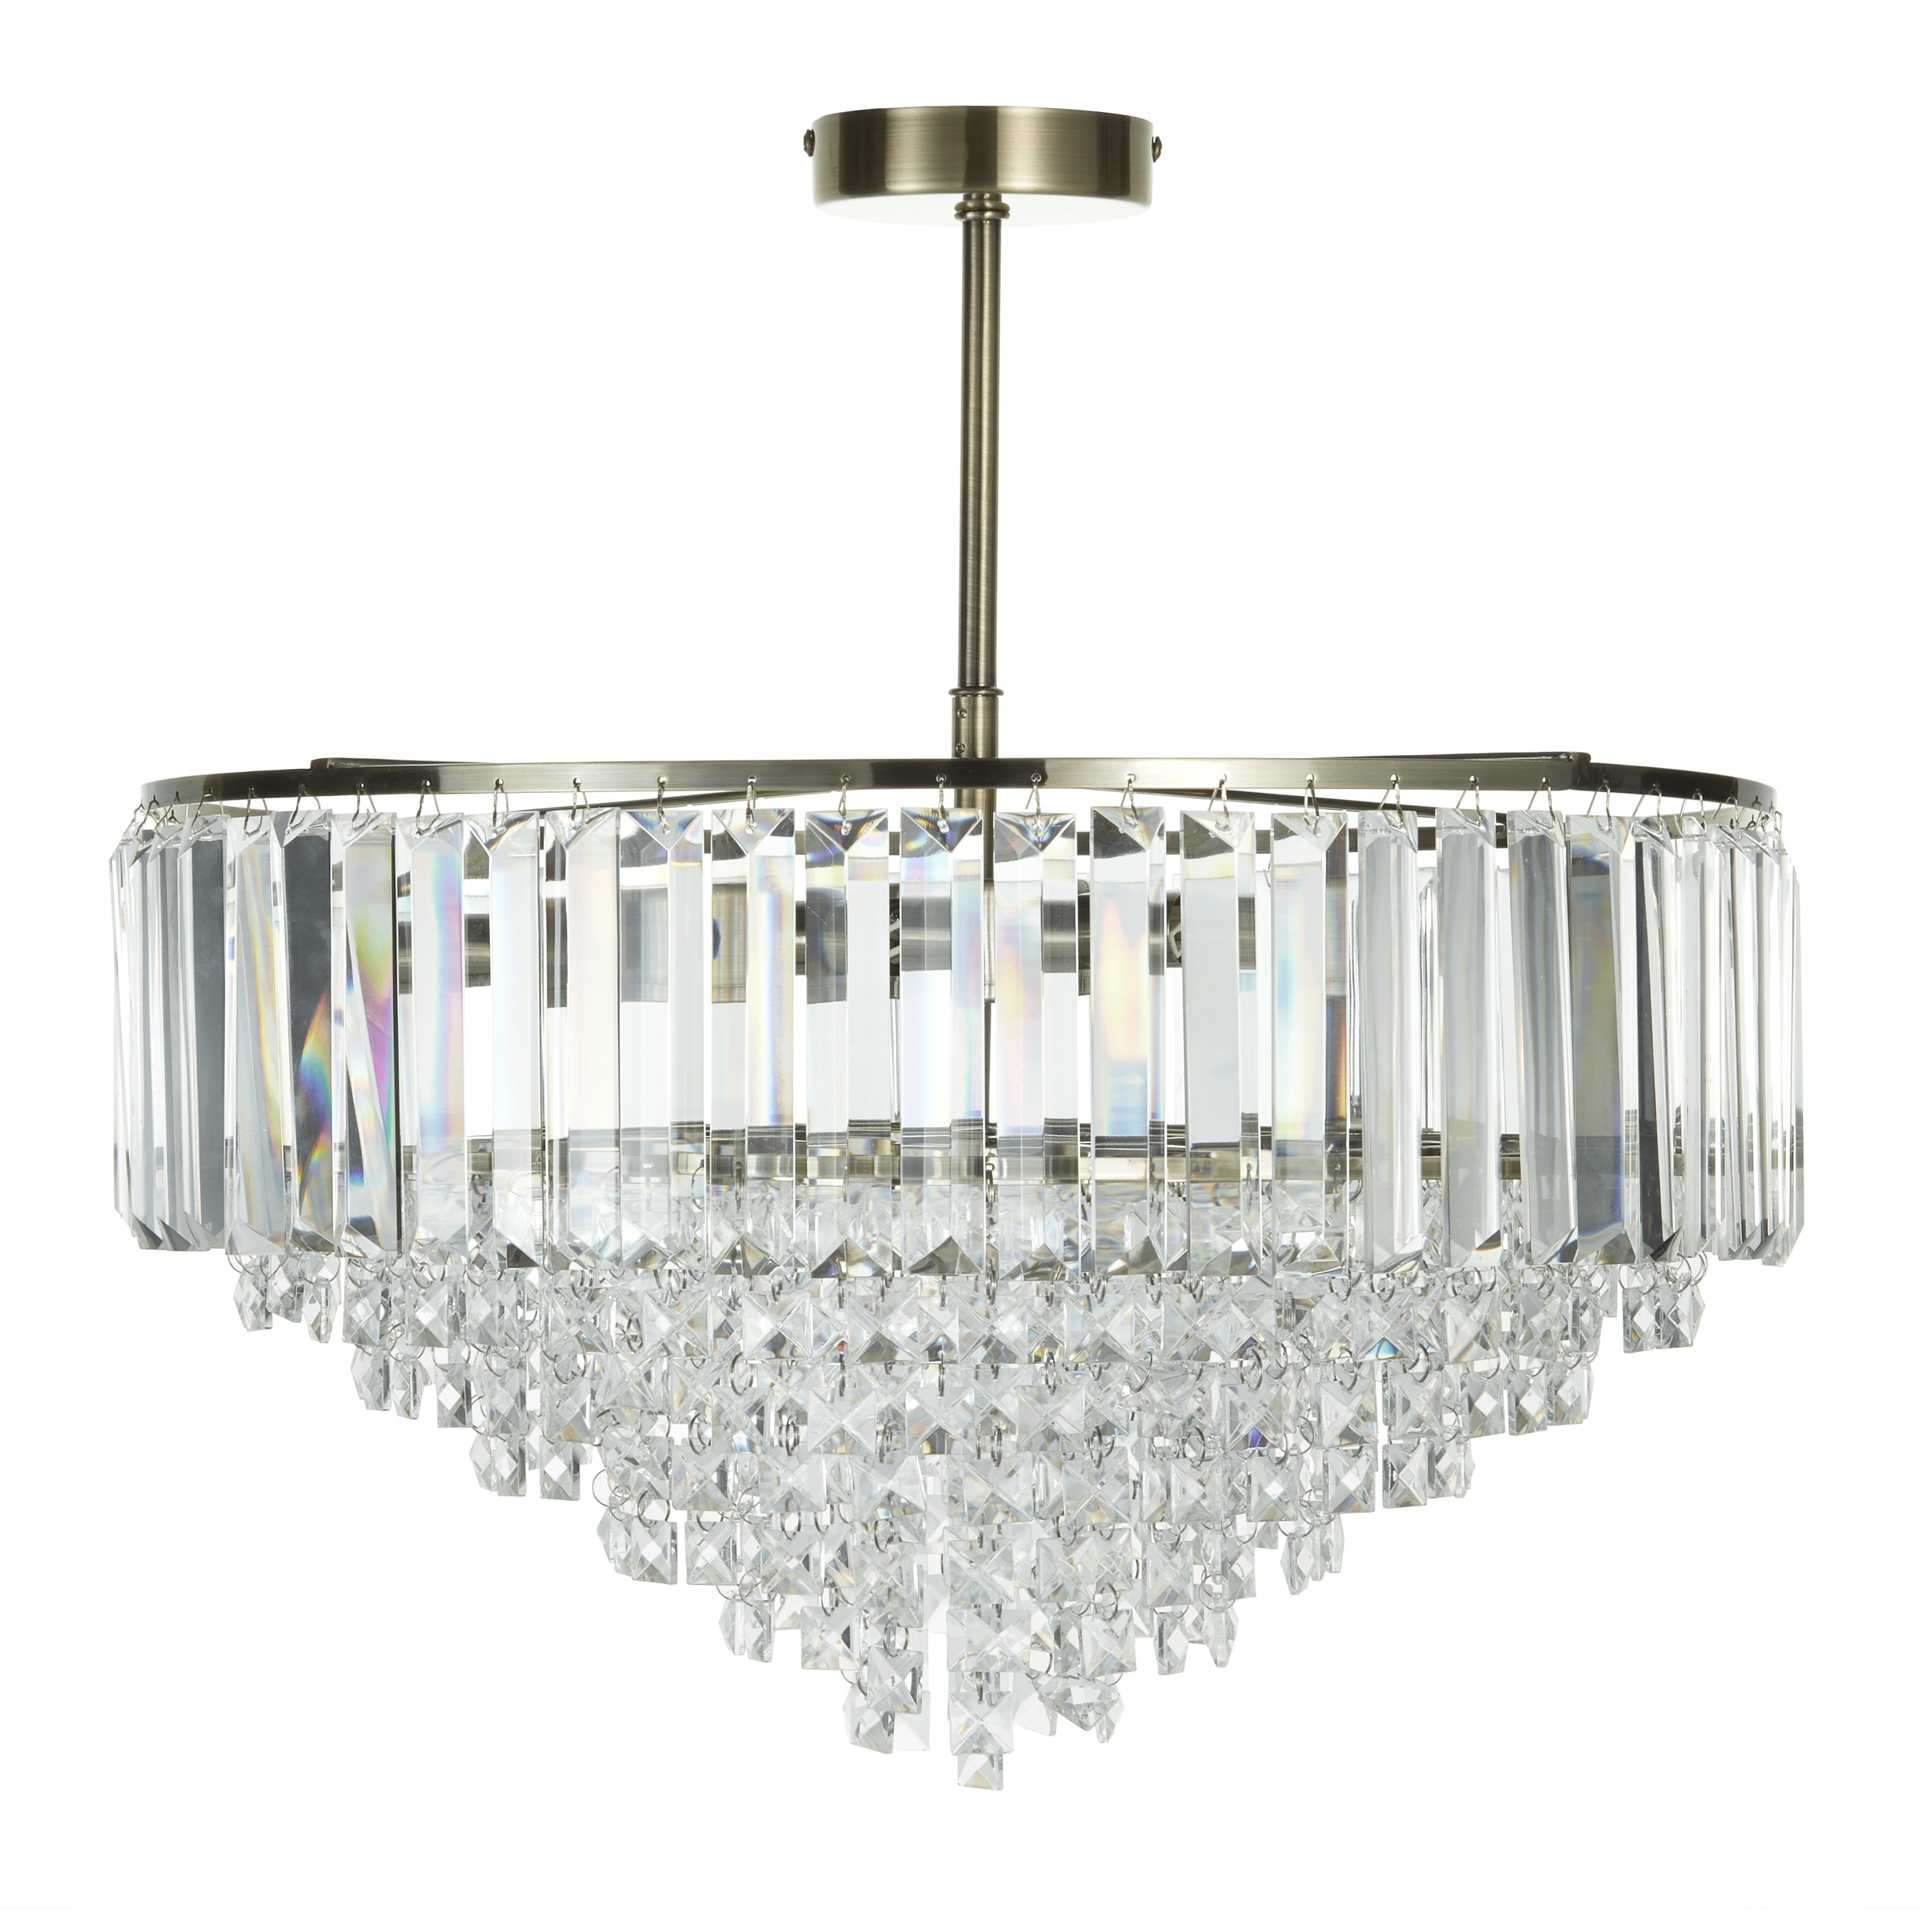 Laura Ashley Regarding Vienna Crystal Chandeliers (View 6 of 20)